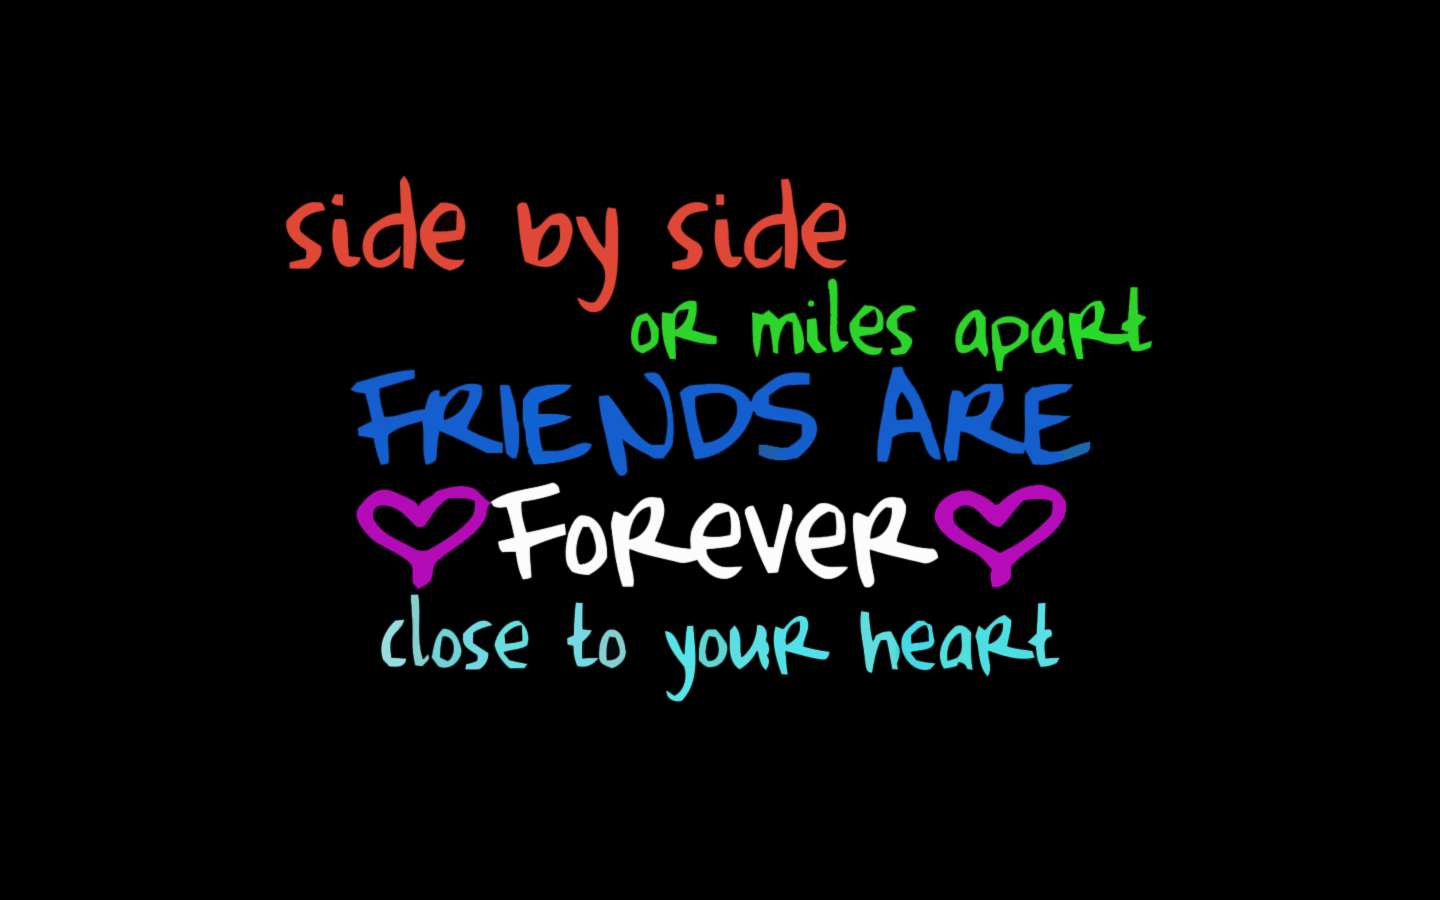 Bff Quotes Wallpapers Friends Pictures Images Graphics For Facebook Whatsapp